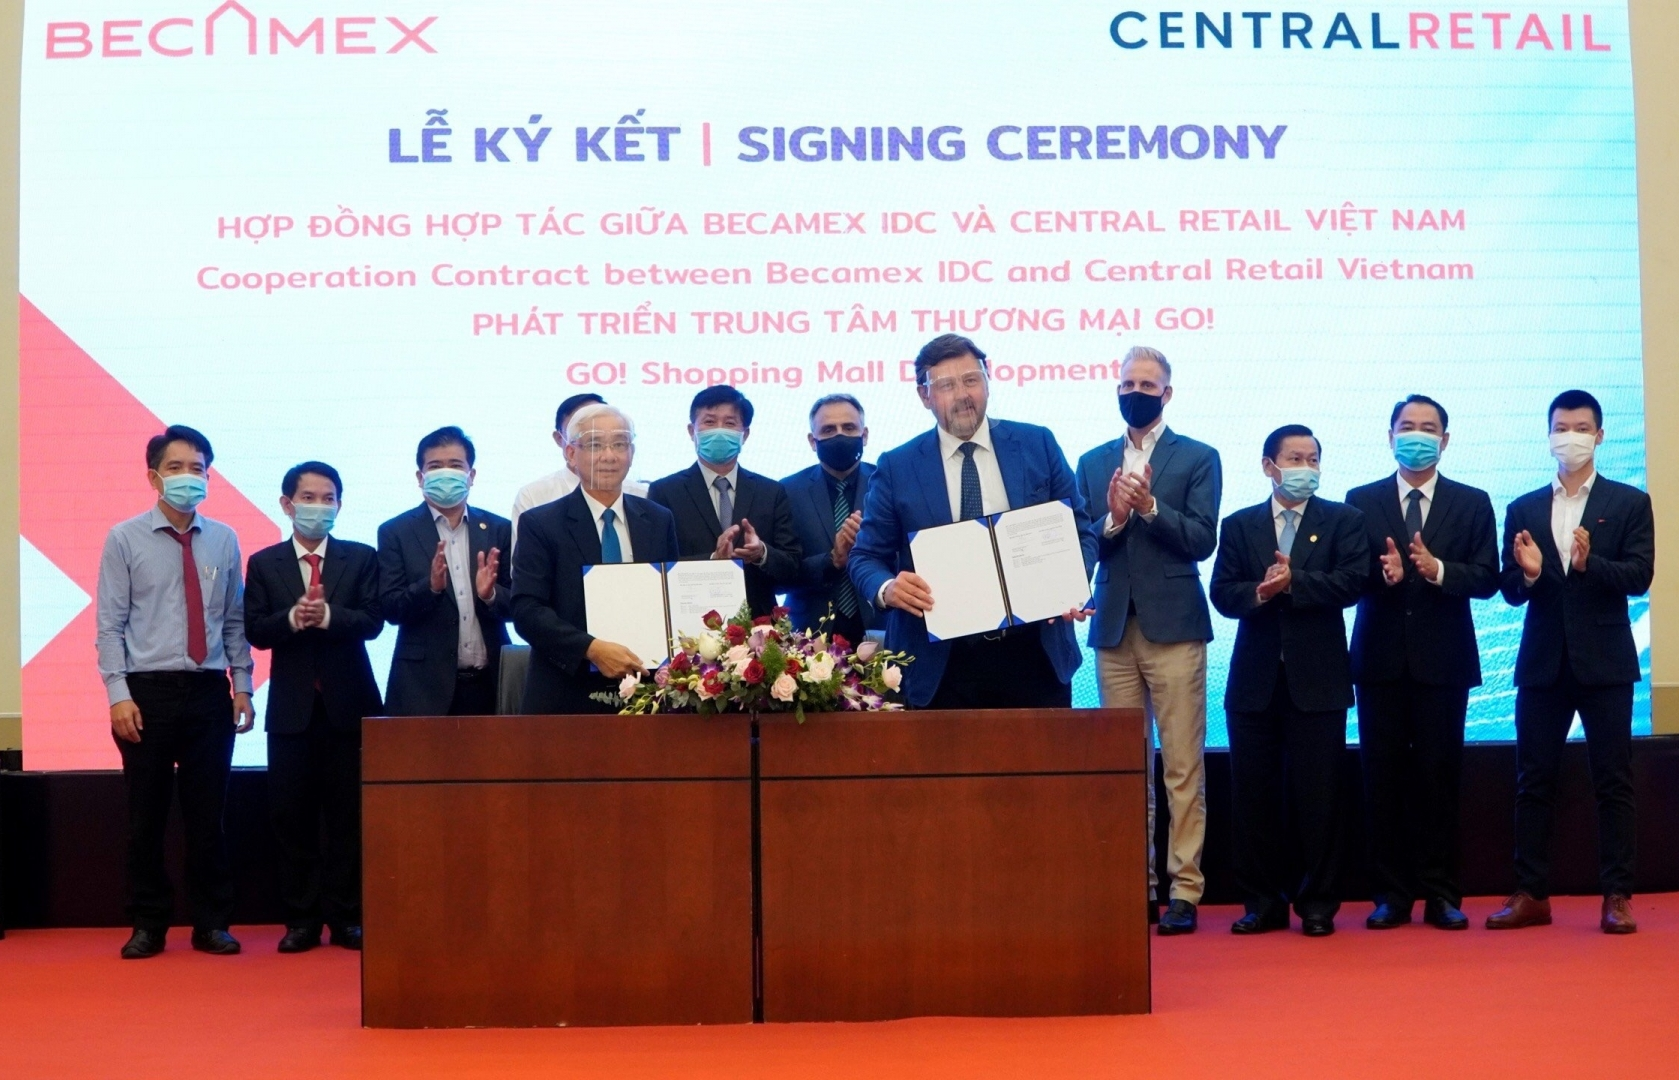 Becamex IDC and Central Retail Vietnam co-develop GO! shopping mall in Binh Duong